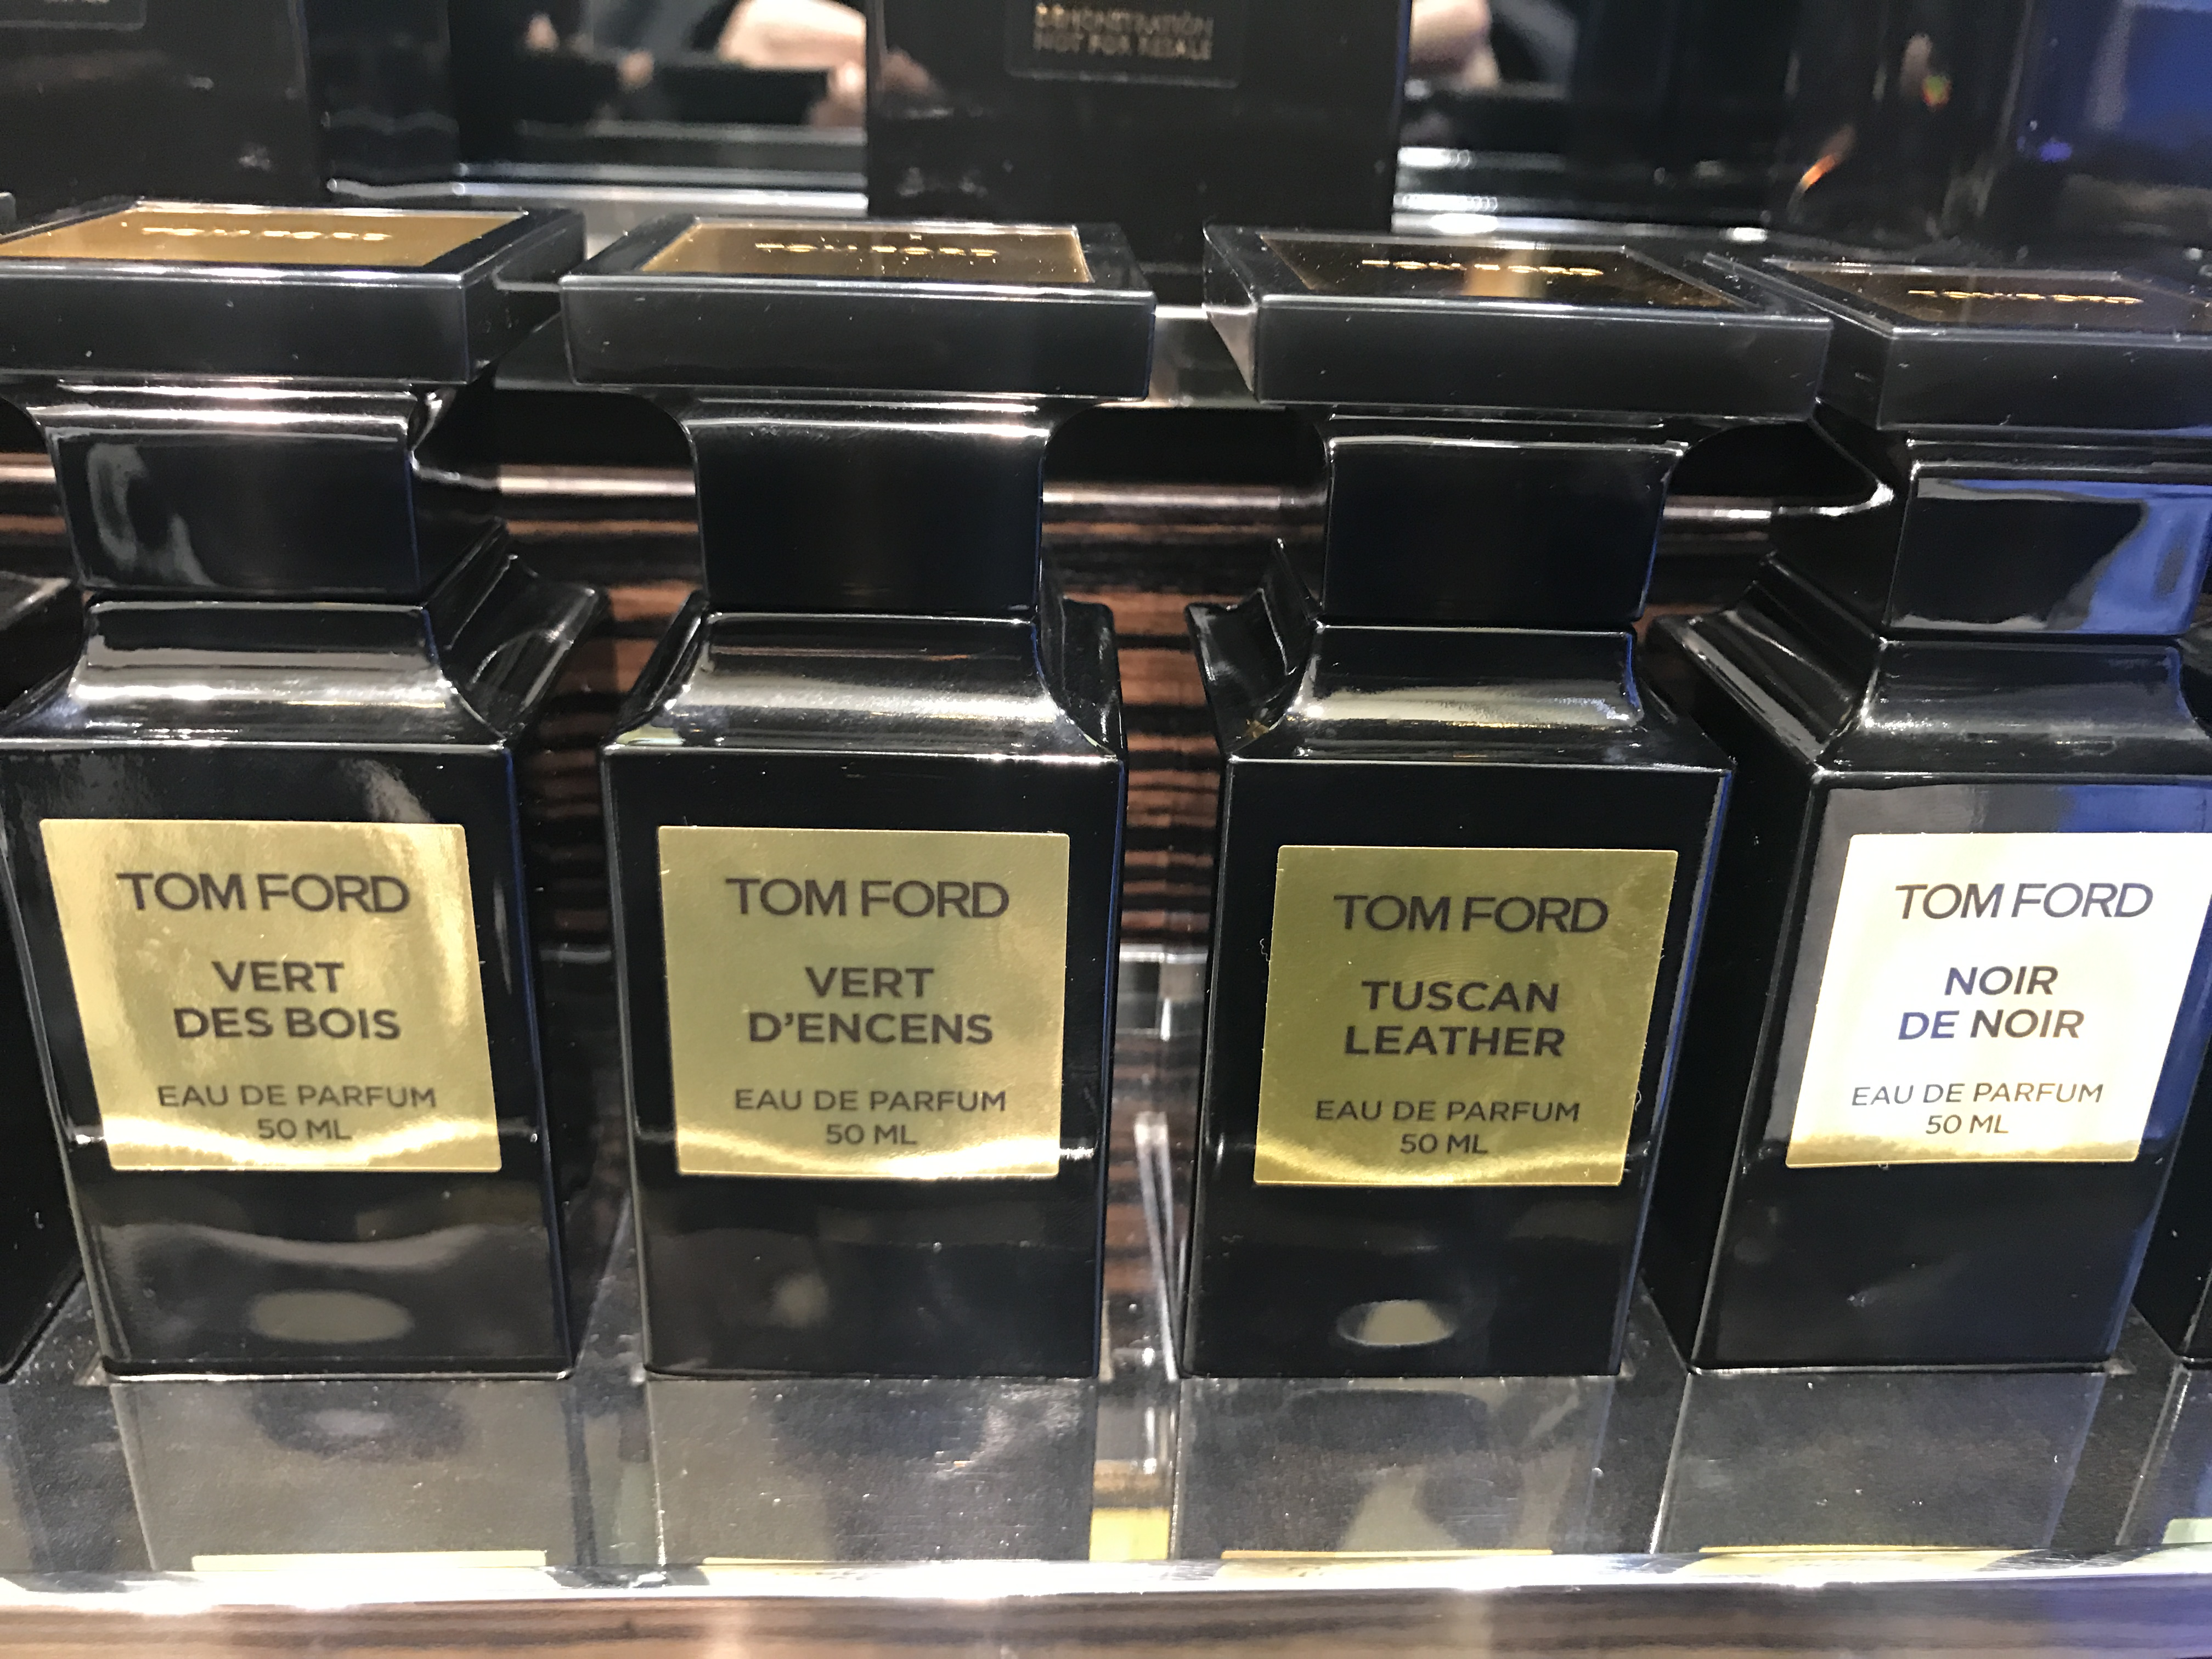 usd sf spot tf tom ford perfume oud wood white. Black Bedroom Furniture Sets. Home Design Ideas